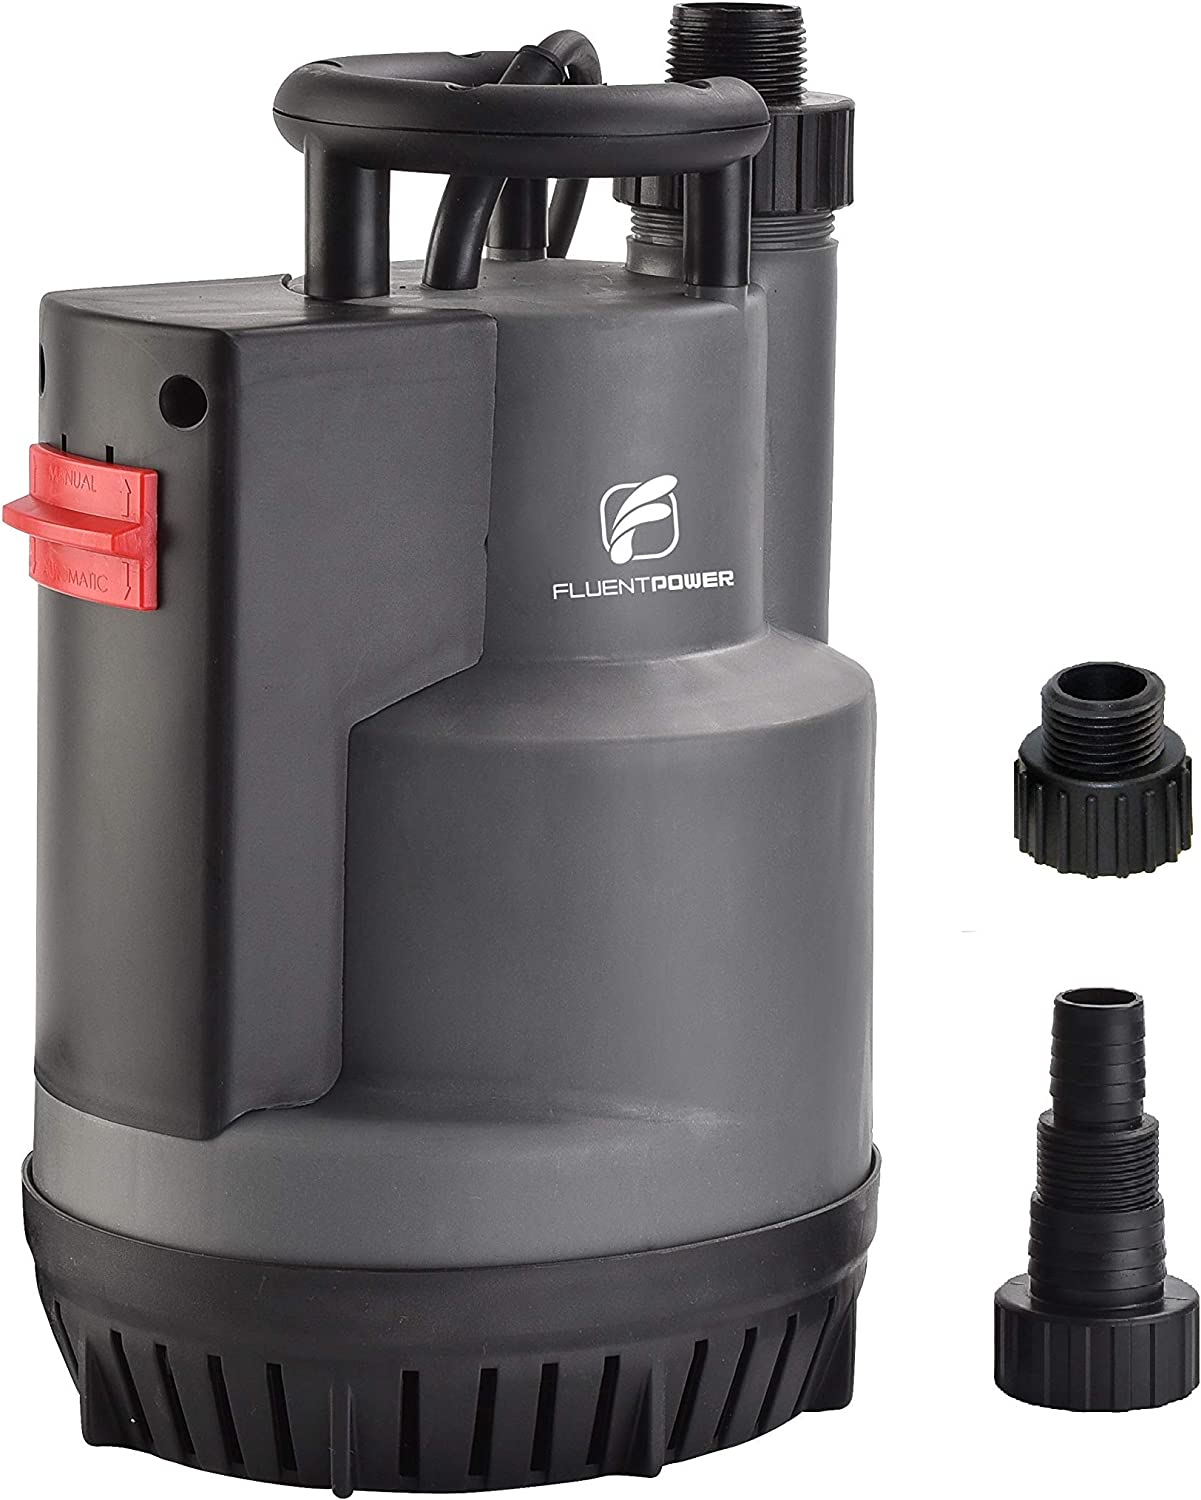 "FLUENTPOWER 1/2 HP Submersible Pump, 2200 GPH Portable Electric Water Removal Pump with Switchable Auto/Manual Modes for Water Transfer, with 3/4"" Garden Hose Adapter and NPT 1"" Hose Connection"